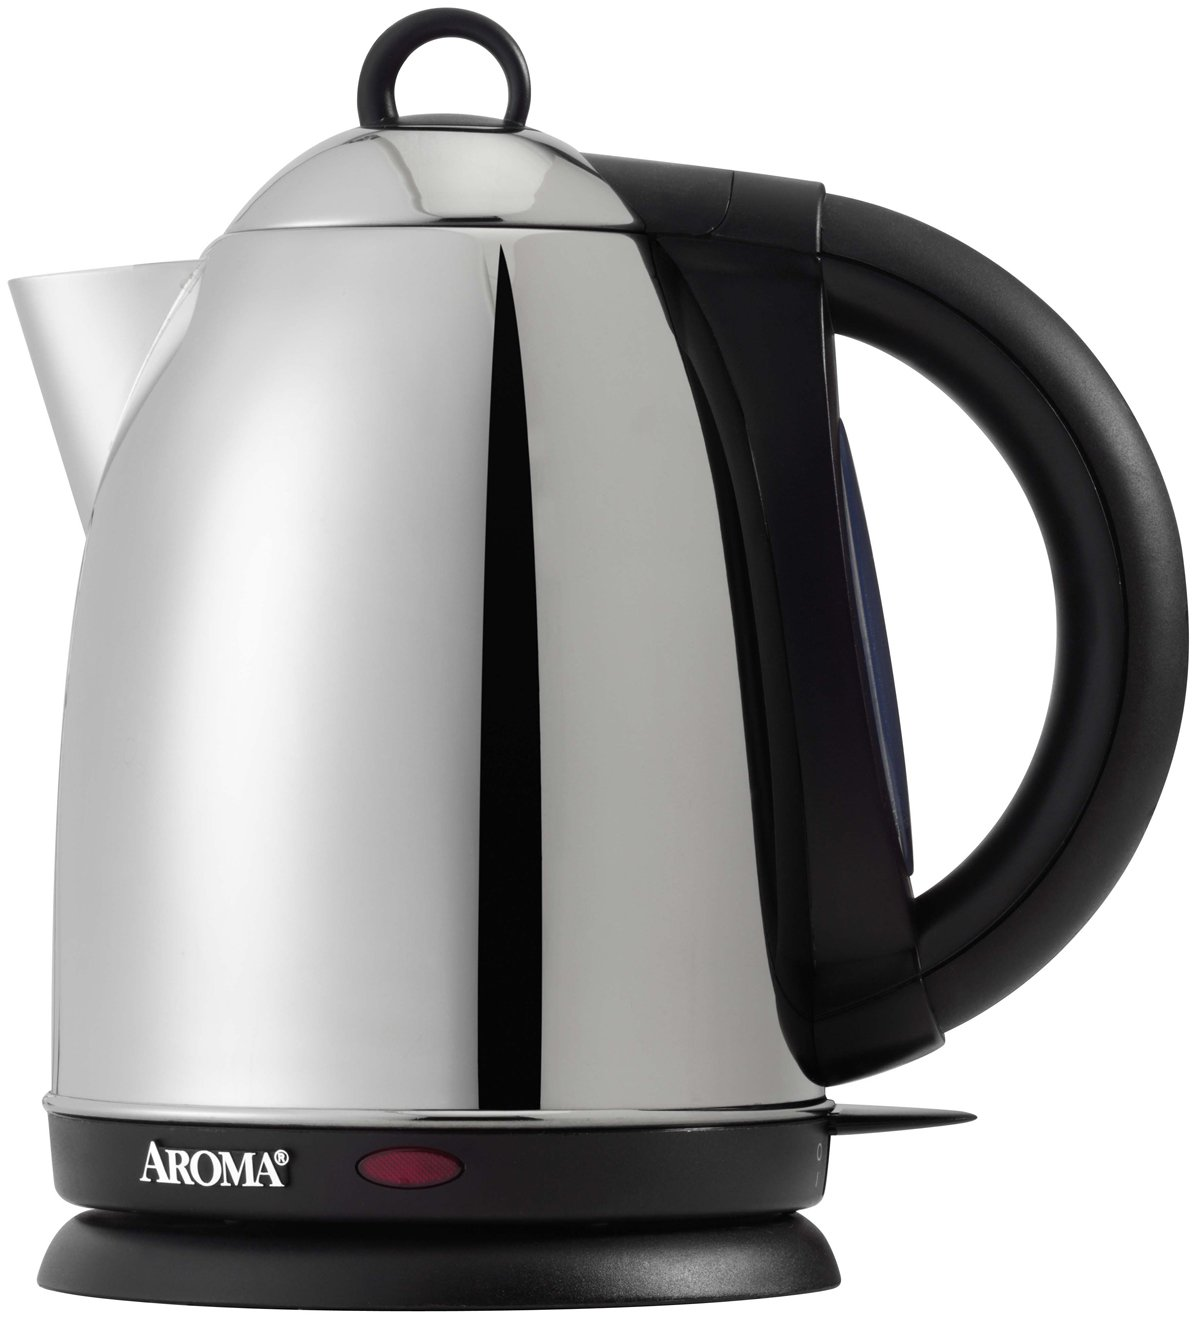 Aroma Awk-115s Hot H20 X-press 1-1/2-liter Cordless Water Kettle at Sears.com